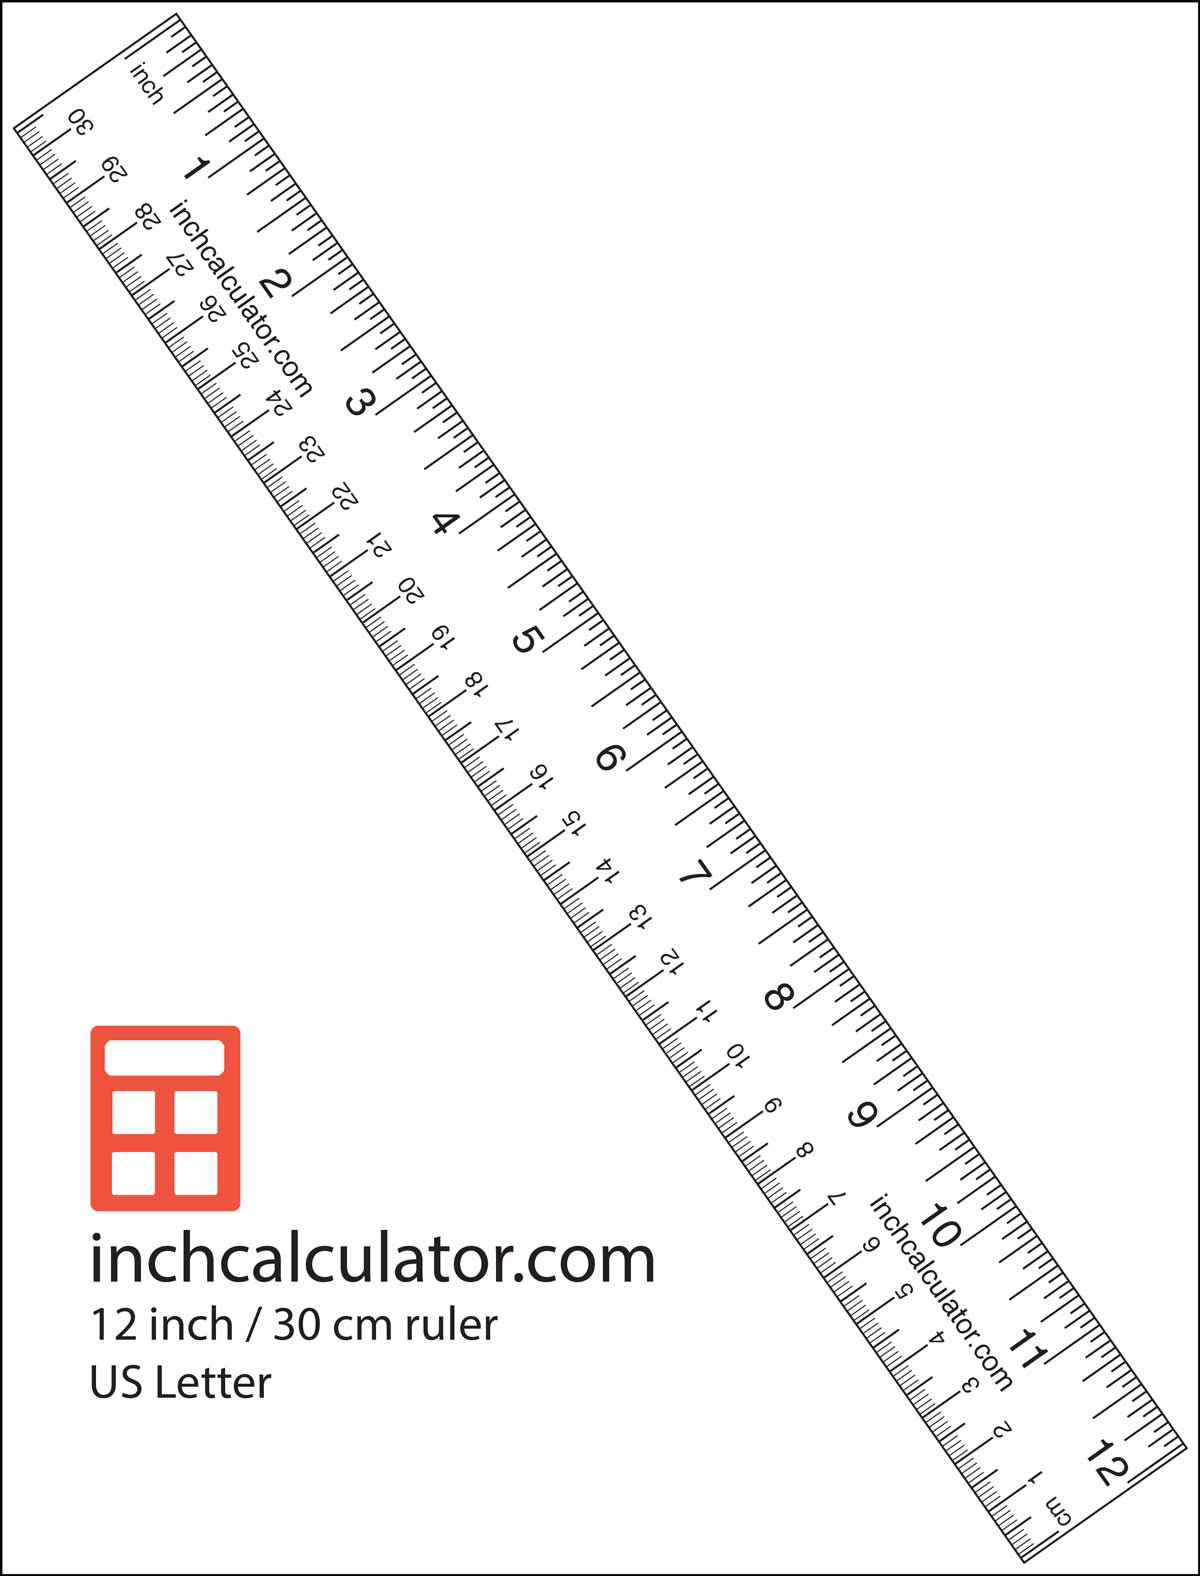 worksheet Tape Measure Fractions printable rulers free downloadable 12 inch calculator print a paper ruler to take measurements when you dont have tape measure